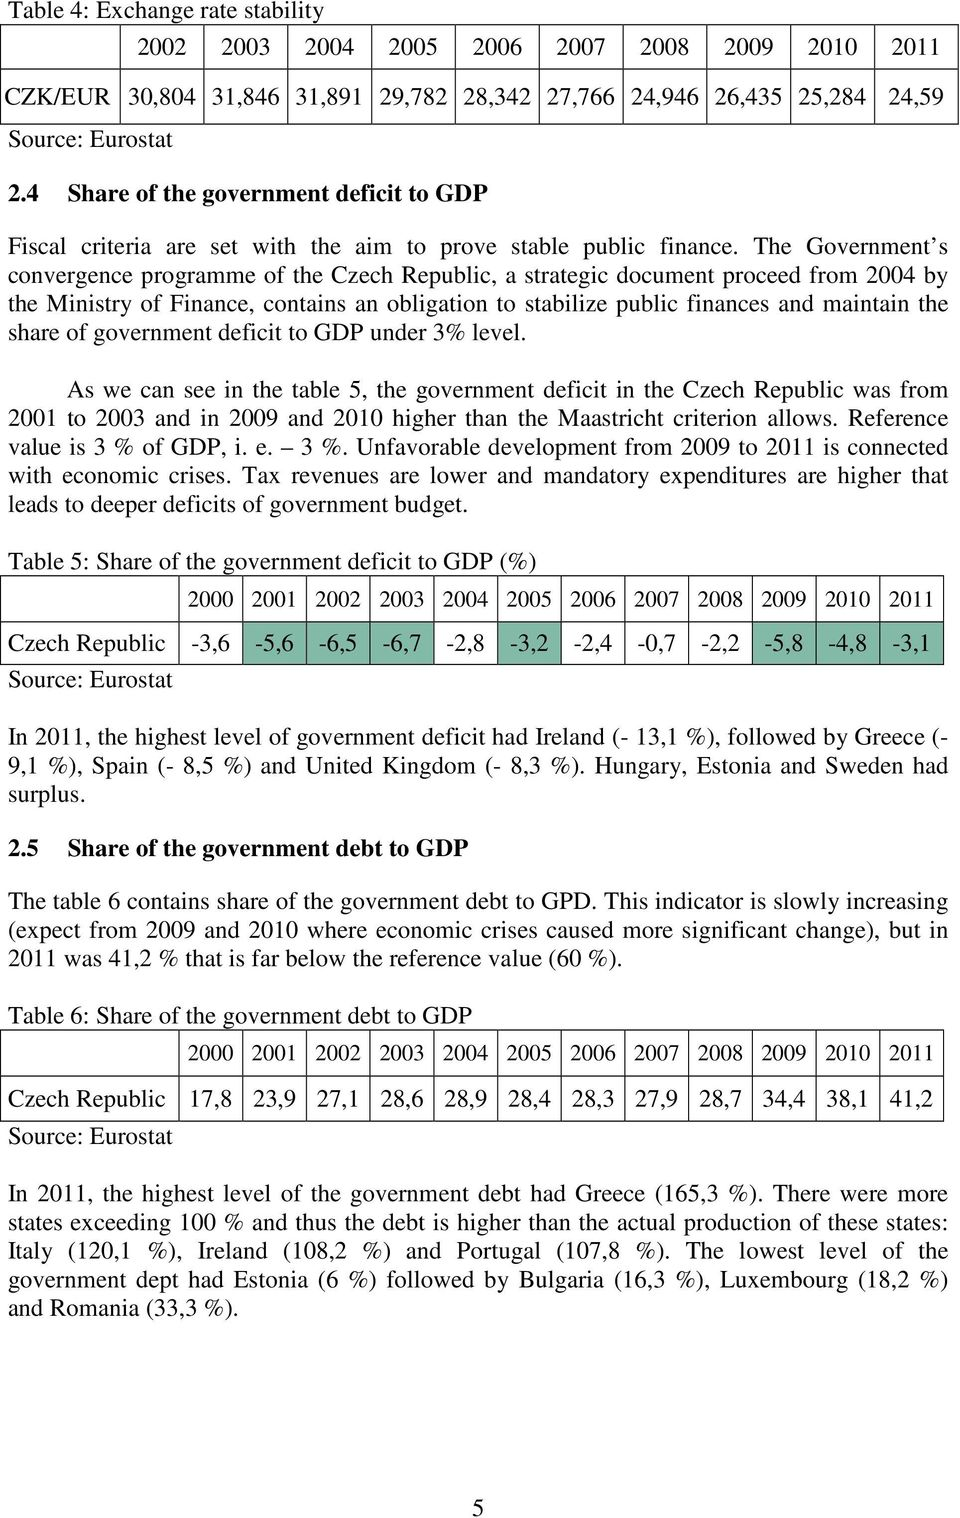 The Government s convergence programme of the Czech Republic, a strategic document proceed from 2004 by the Ministry of Finance, contains an obligation to stabilize public finances and maintain the